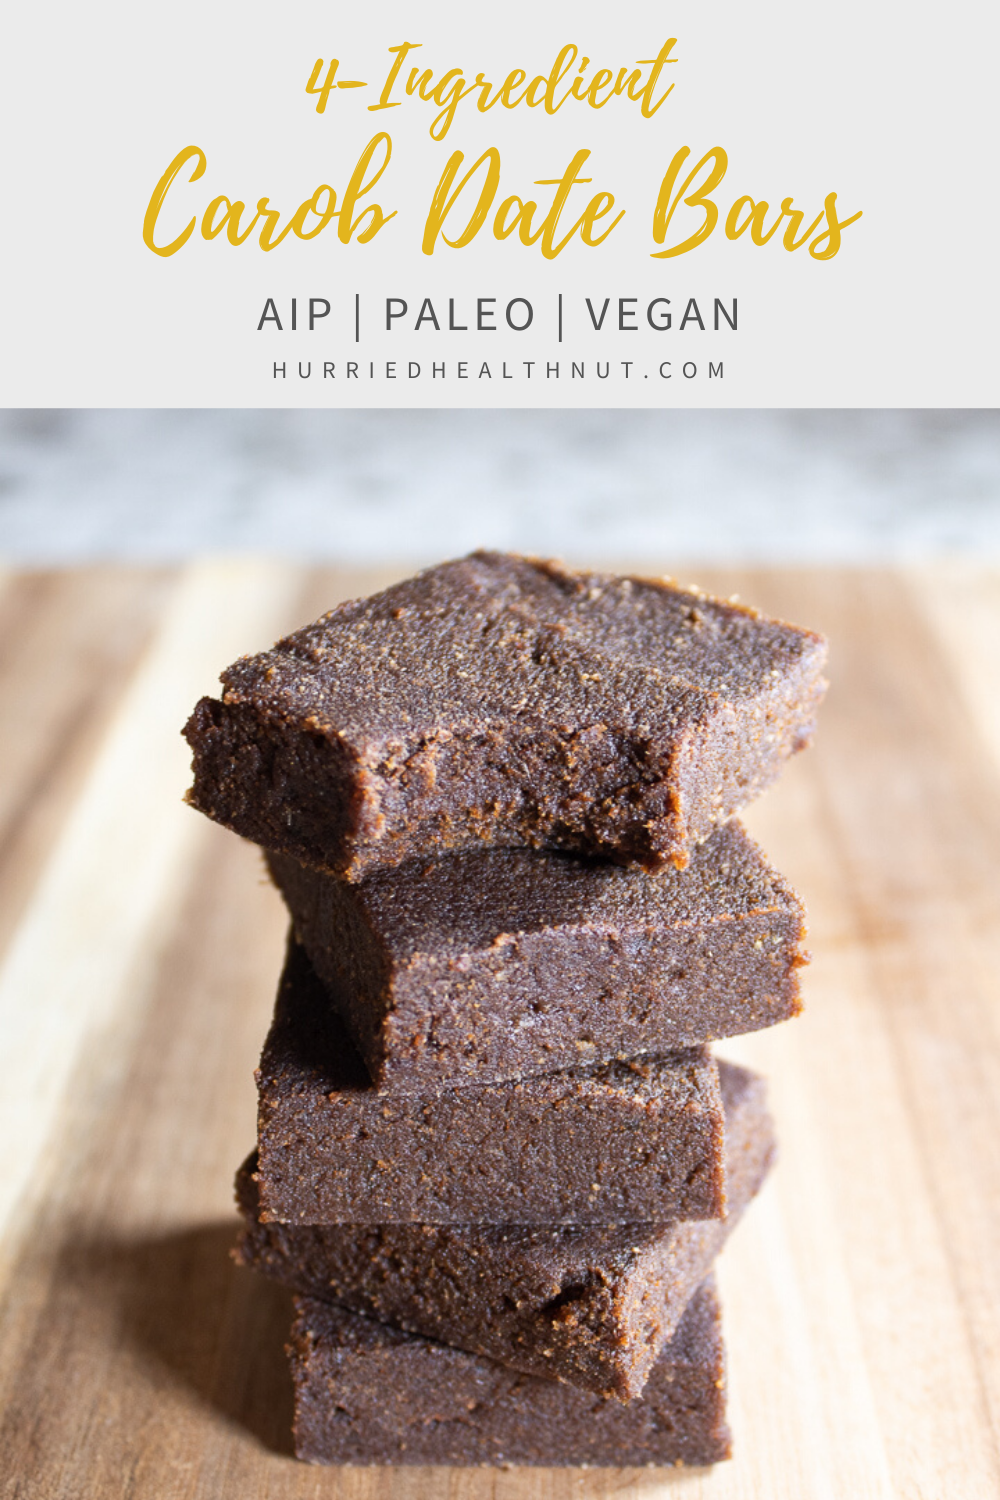 These Carob Date Bars require just FOUR ingredients and NO baking! Kick your chocolate craving to the curb with these healthy AIP, paleo and vegan treats!